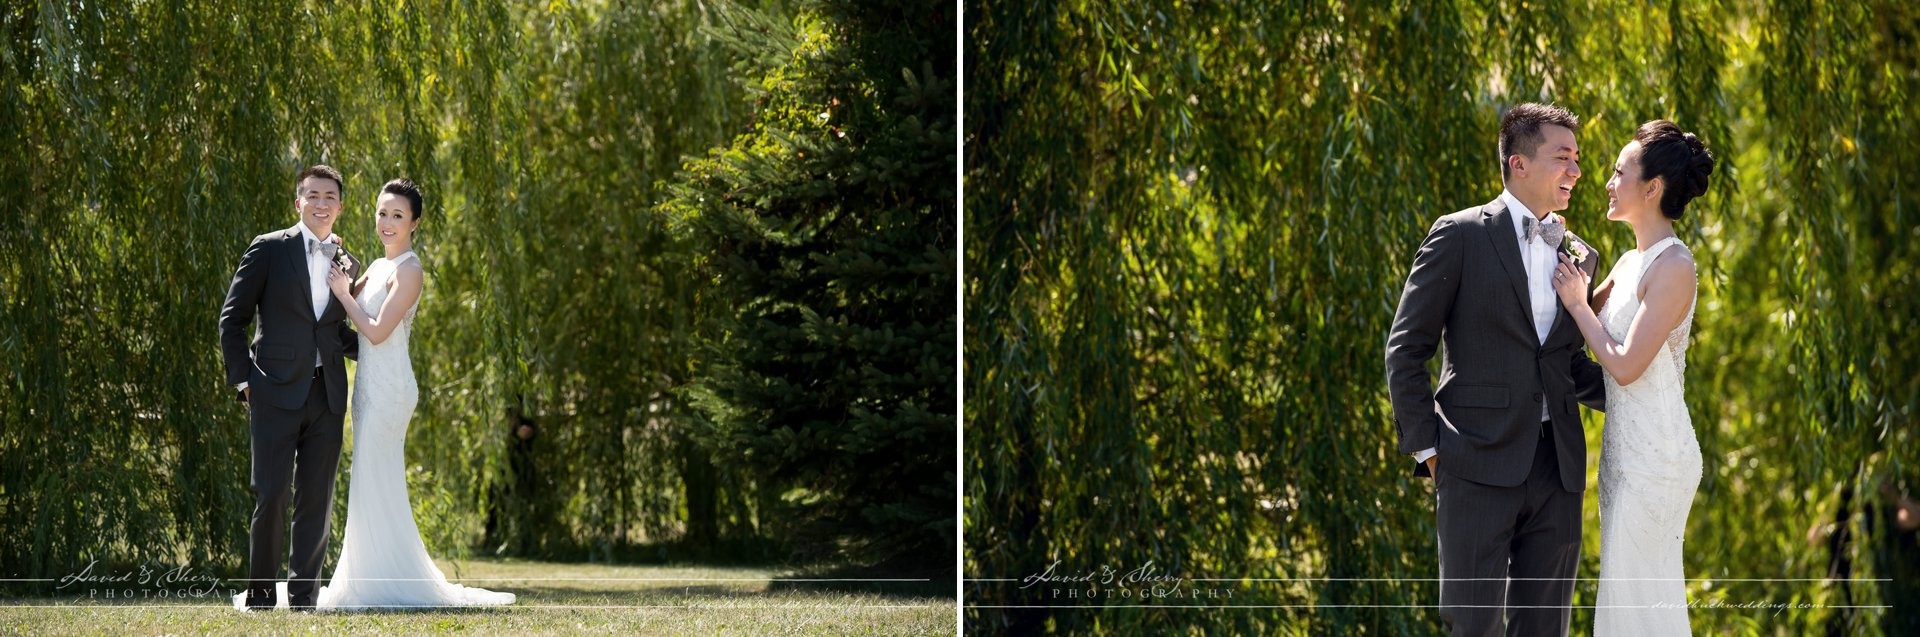 waterstone-estate-wedding-david-sherry-photography-simon-crystal-013